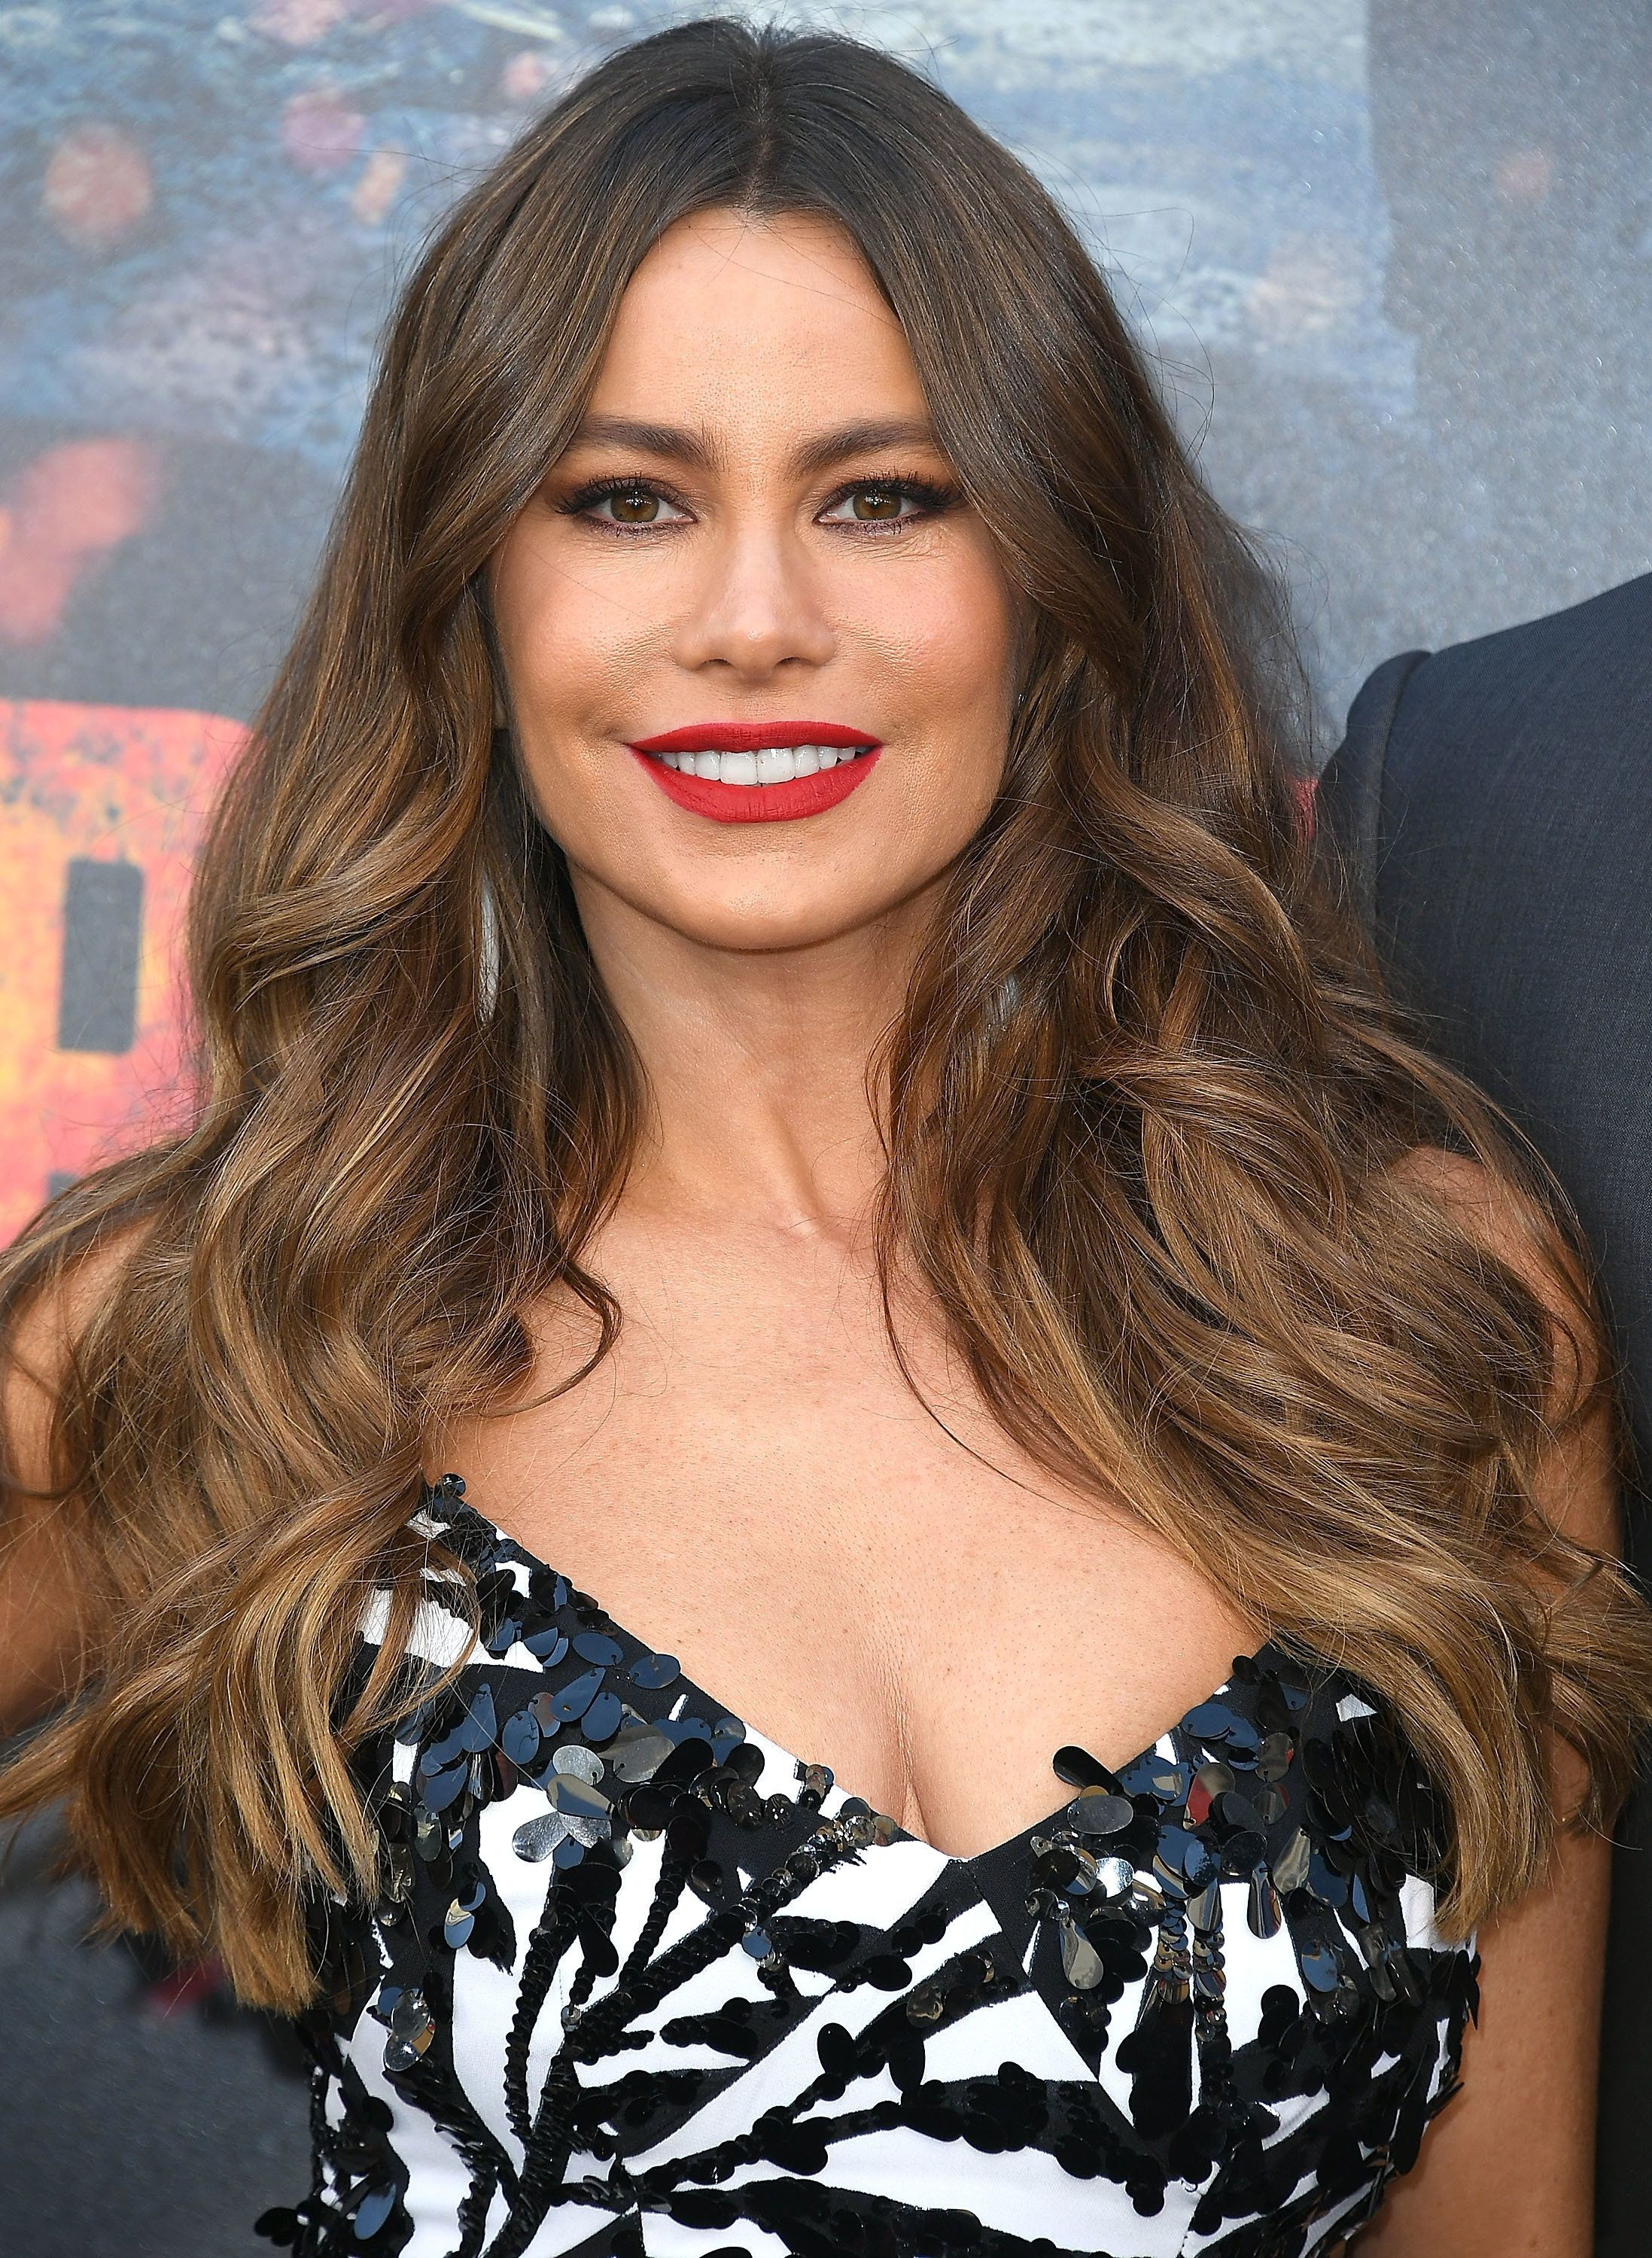 LOS ANGELES, CA - APRIL 04:  Sofia Vergara arrives at the Premiere Of Warner Bros. Pictures' 'Rampage' at Microsoft Theater on April 4, 2018 in Los Angeles, California.  (Photo by Steve Granitz/WireImage)